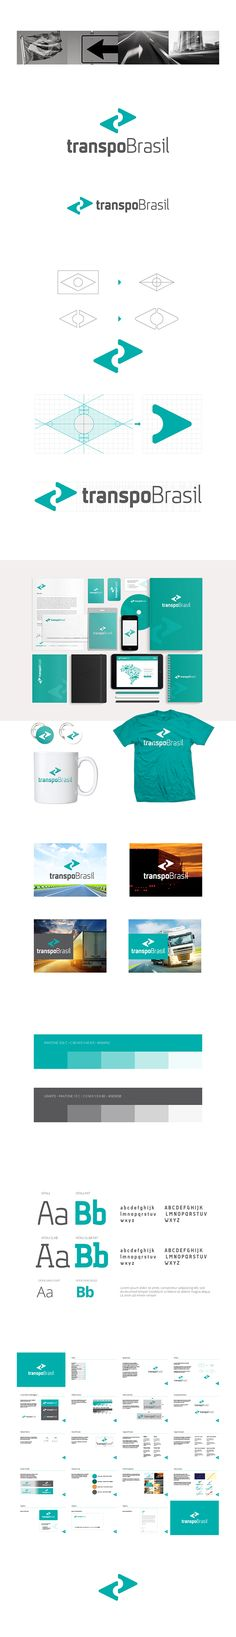 transpoBrasil is a company specialised in the development of solutions for transport and logistics.The symbol was inspired by the geometric shapes of the Brazilian flag. These forms were transformed into two arrows, which represent concepts of transport…